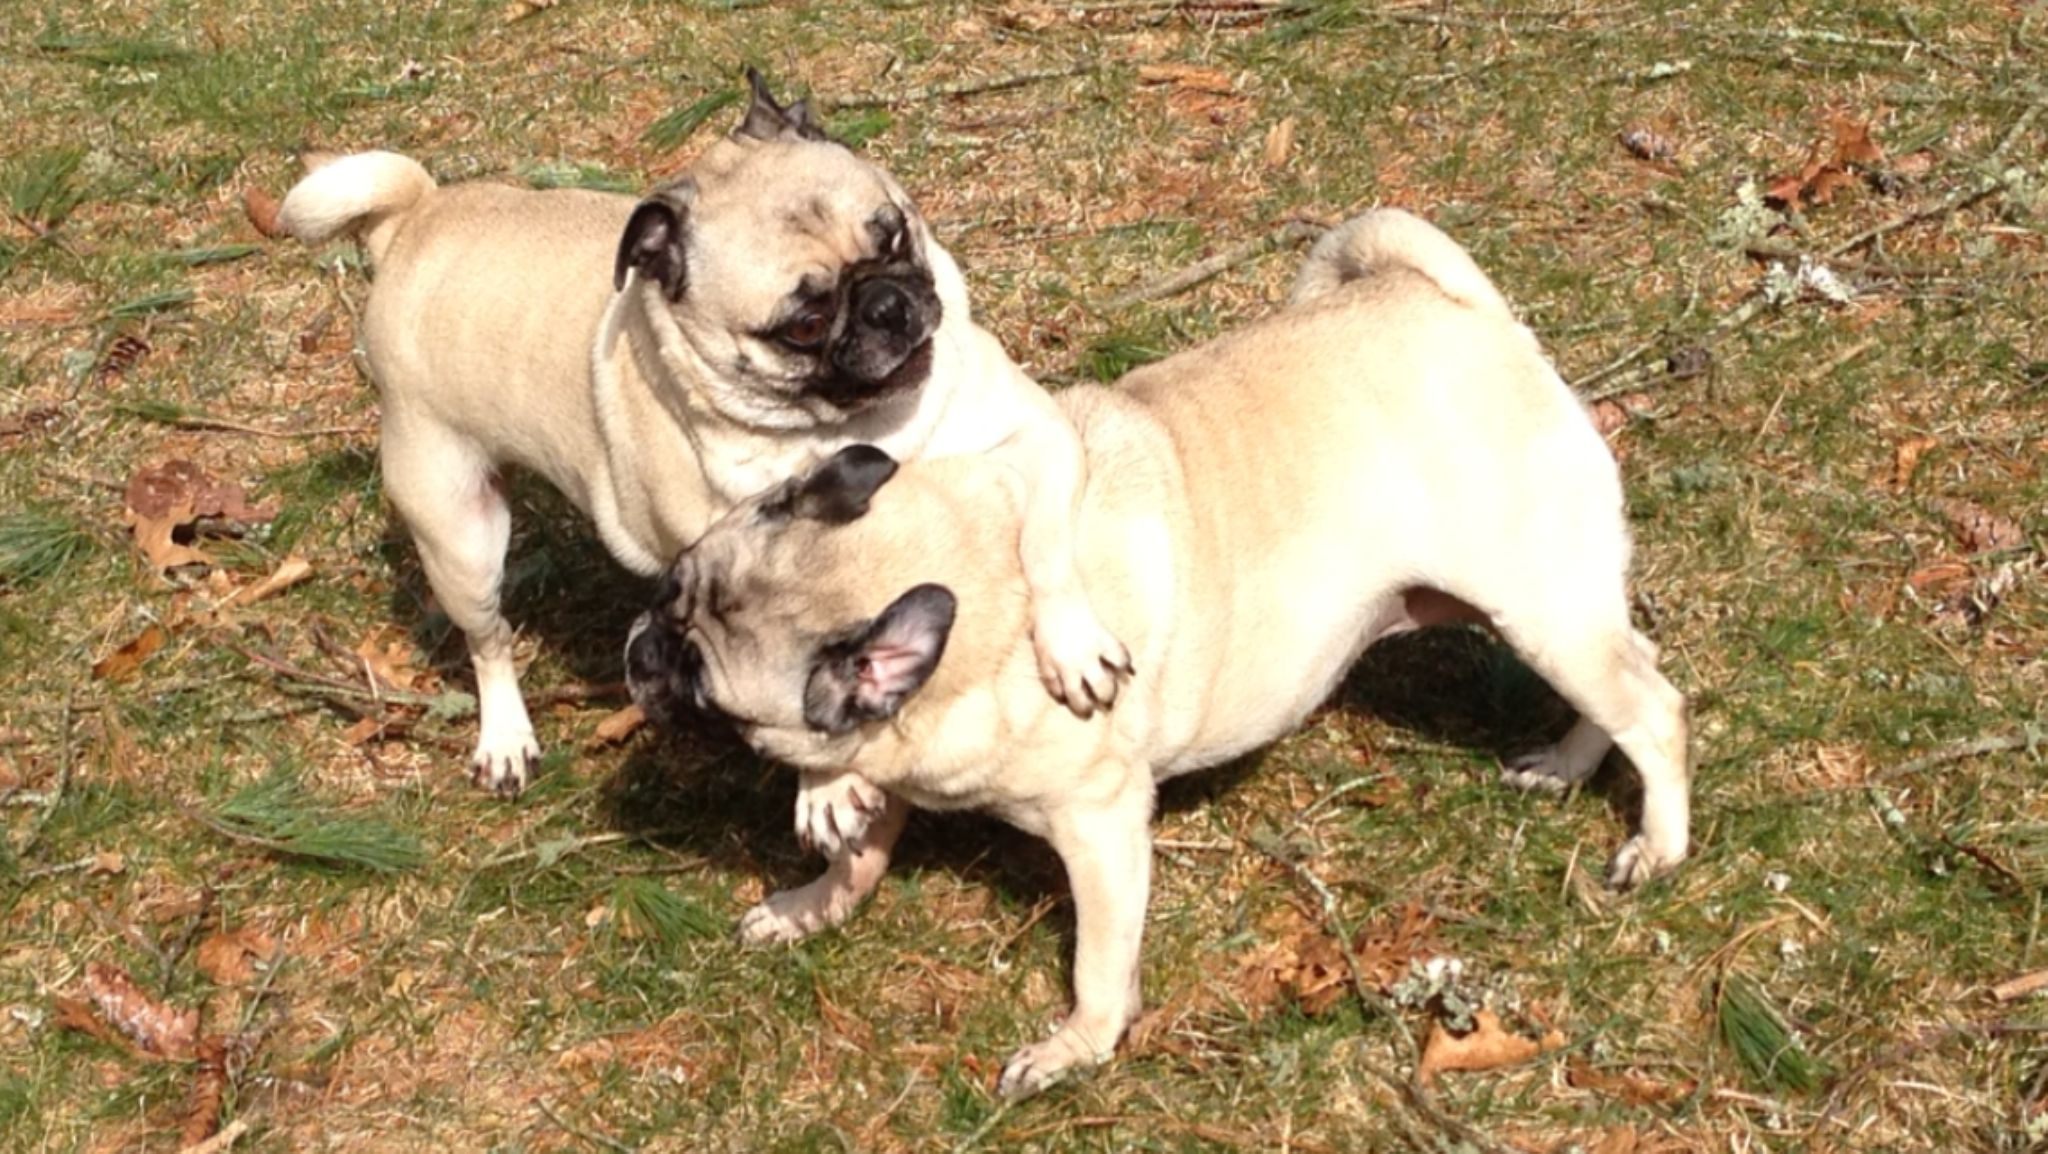 Thelma and Louise and Their Sisterly Love by Lillie Marie